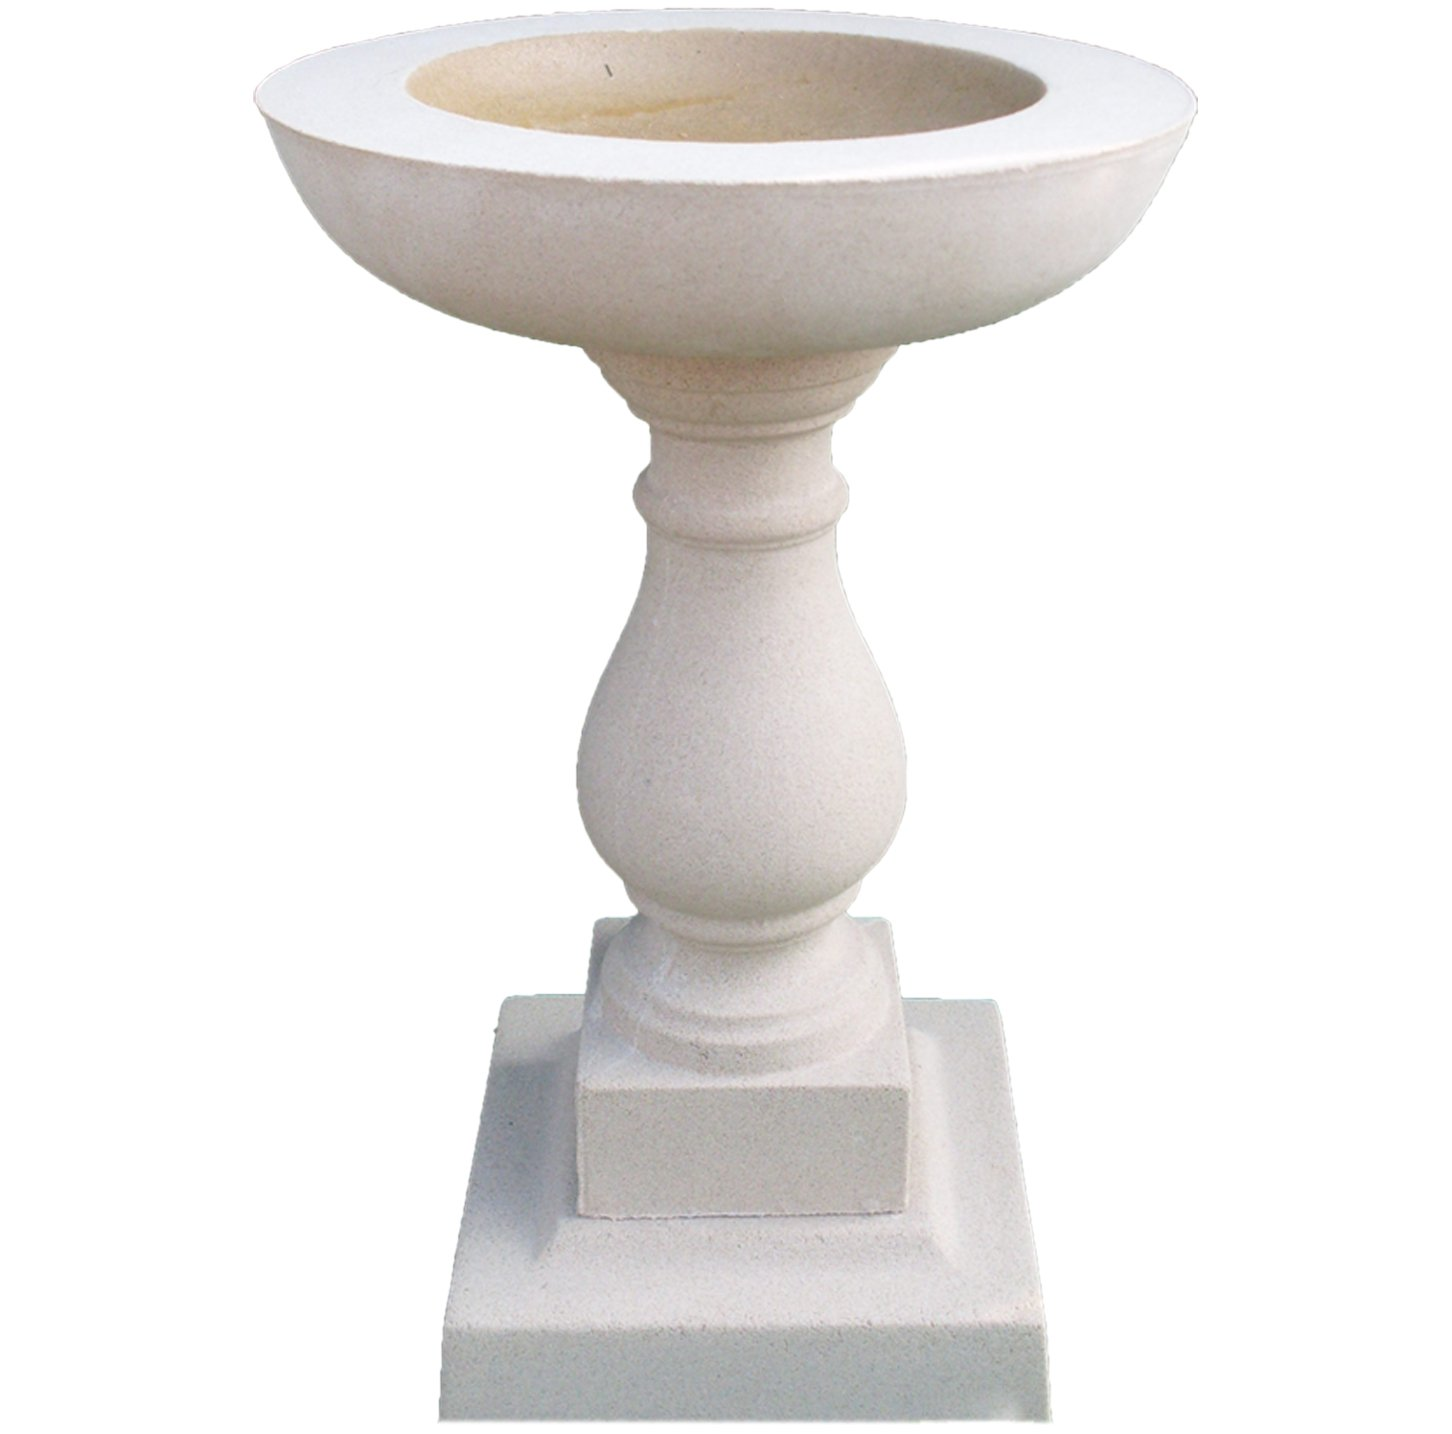 Garden Sculptures & Ornaments Classic Bird Bath Buff In Colour Made From Cast Stone TEL- 07446195317 UK Sculptures ABB3